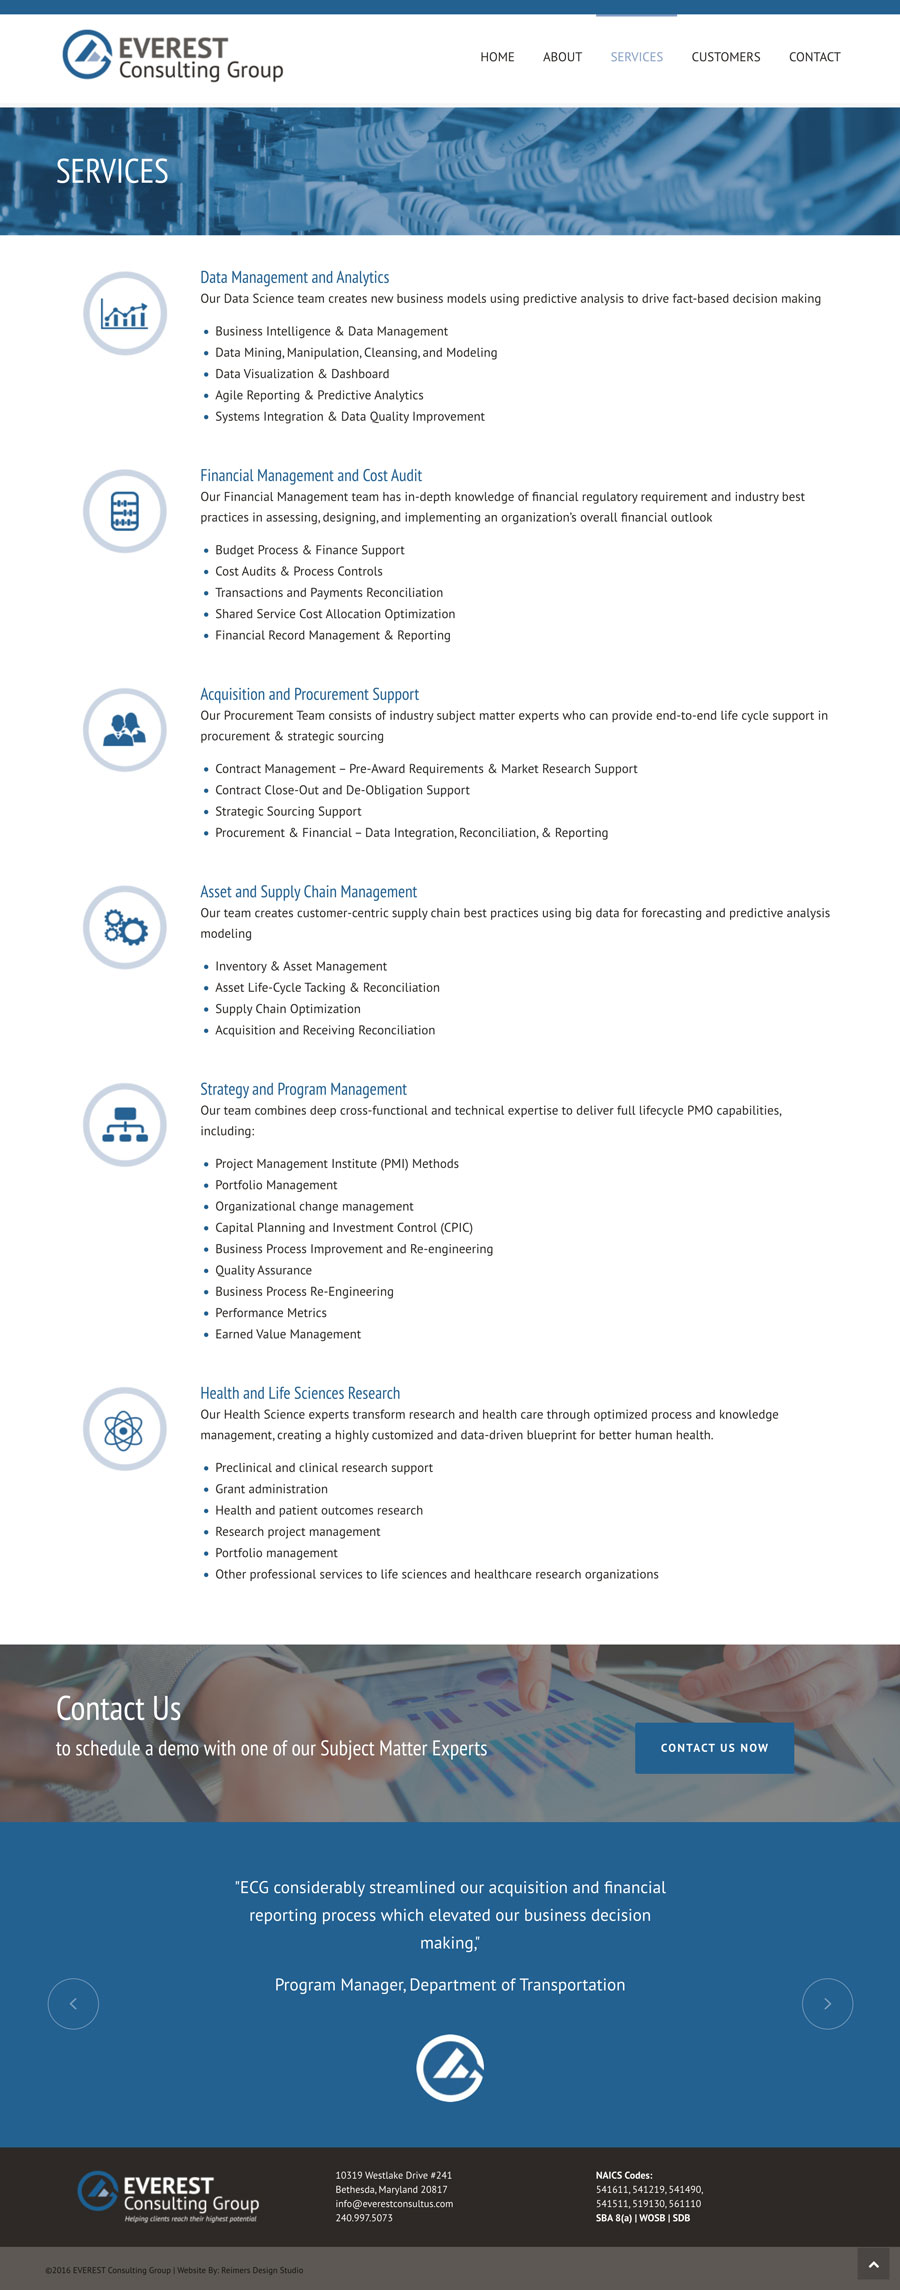 Everest Consulting Group Services